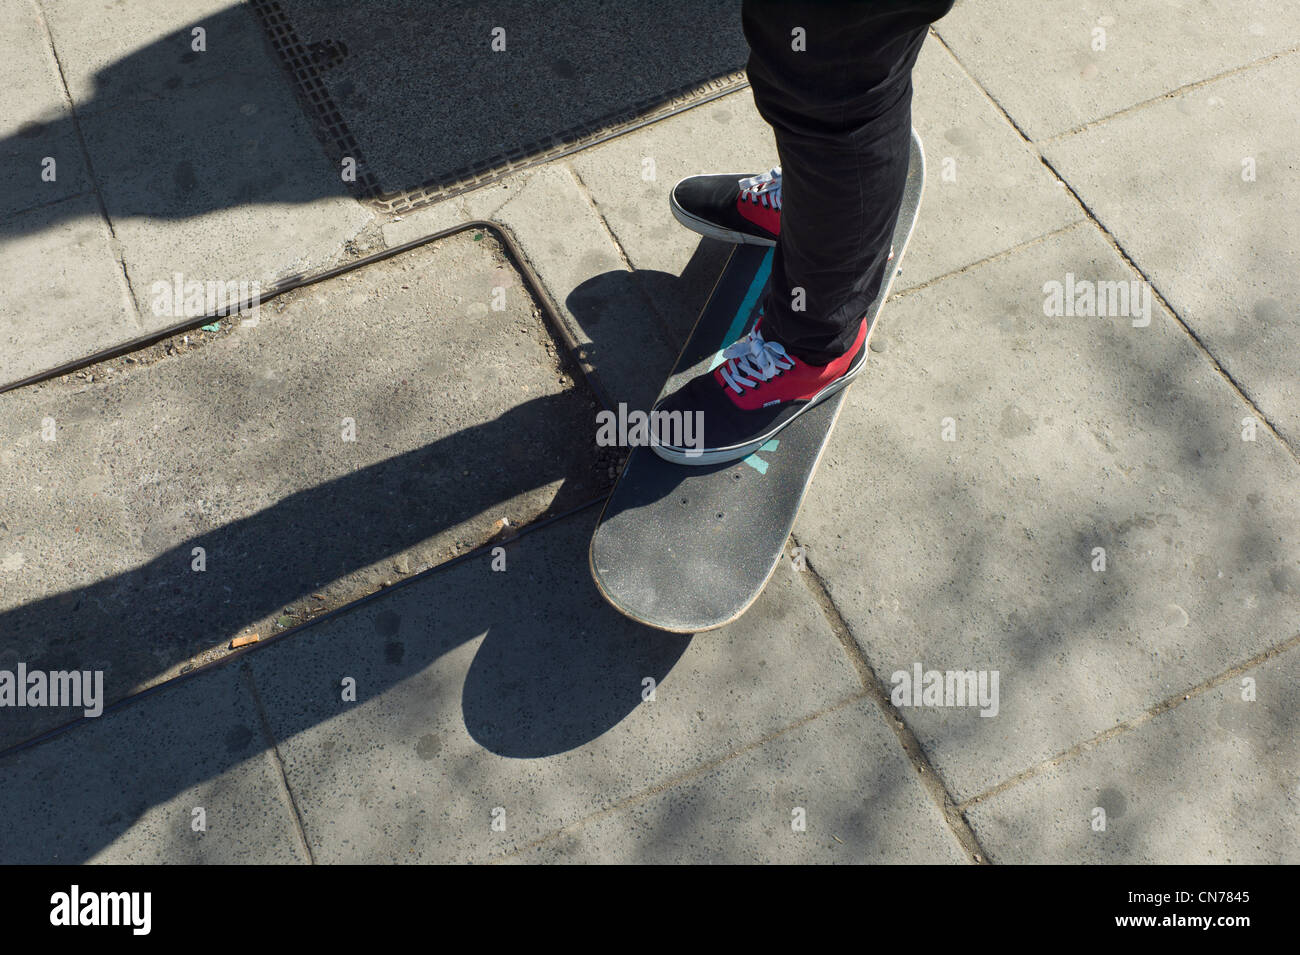 Boy standing on a skate board, Camden Town, London - Stock Image